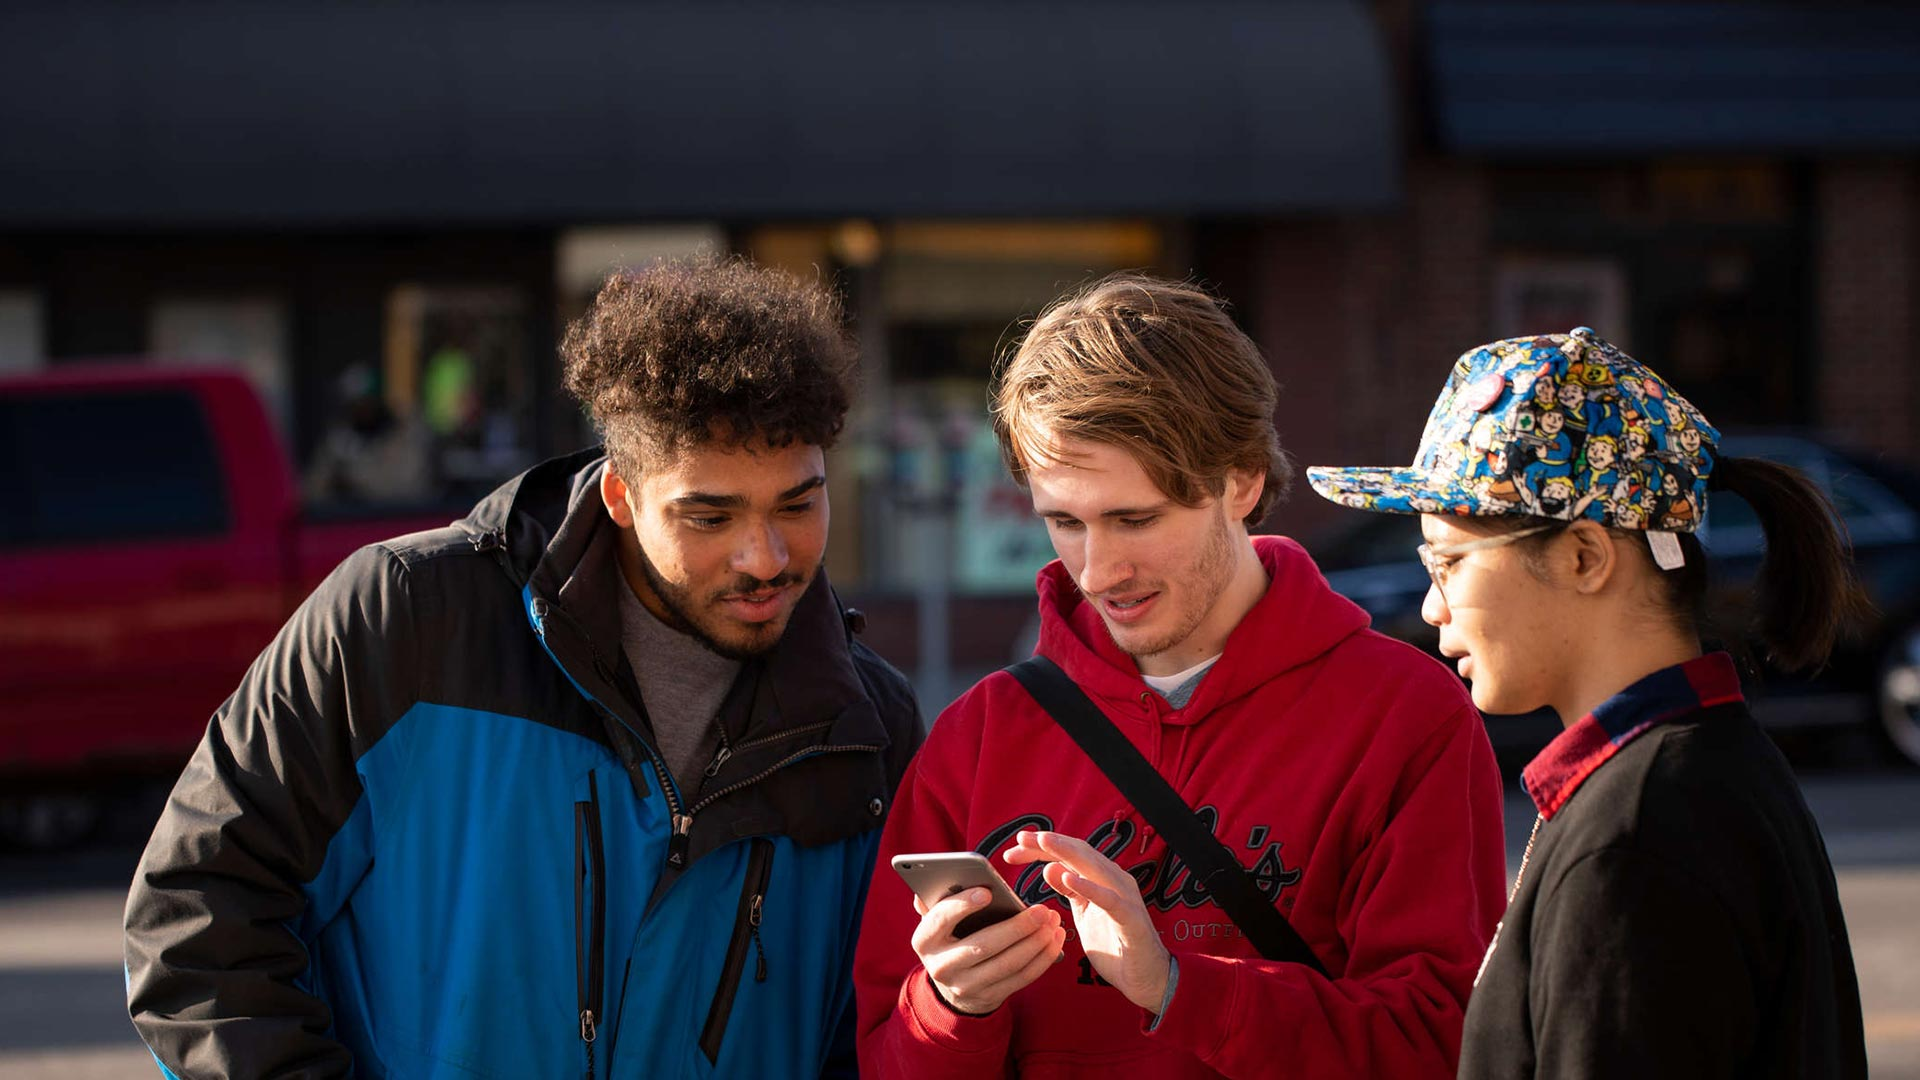 Students look at a smart phone